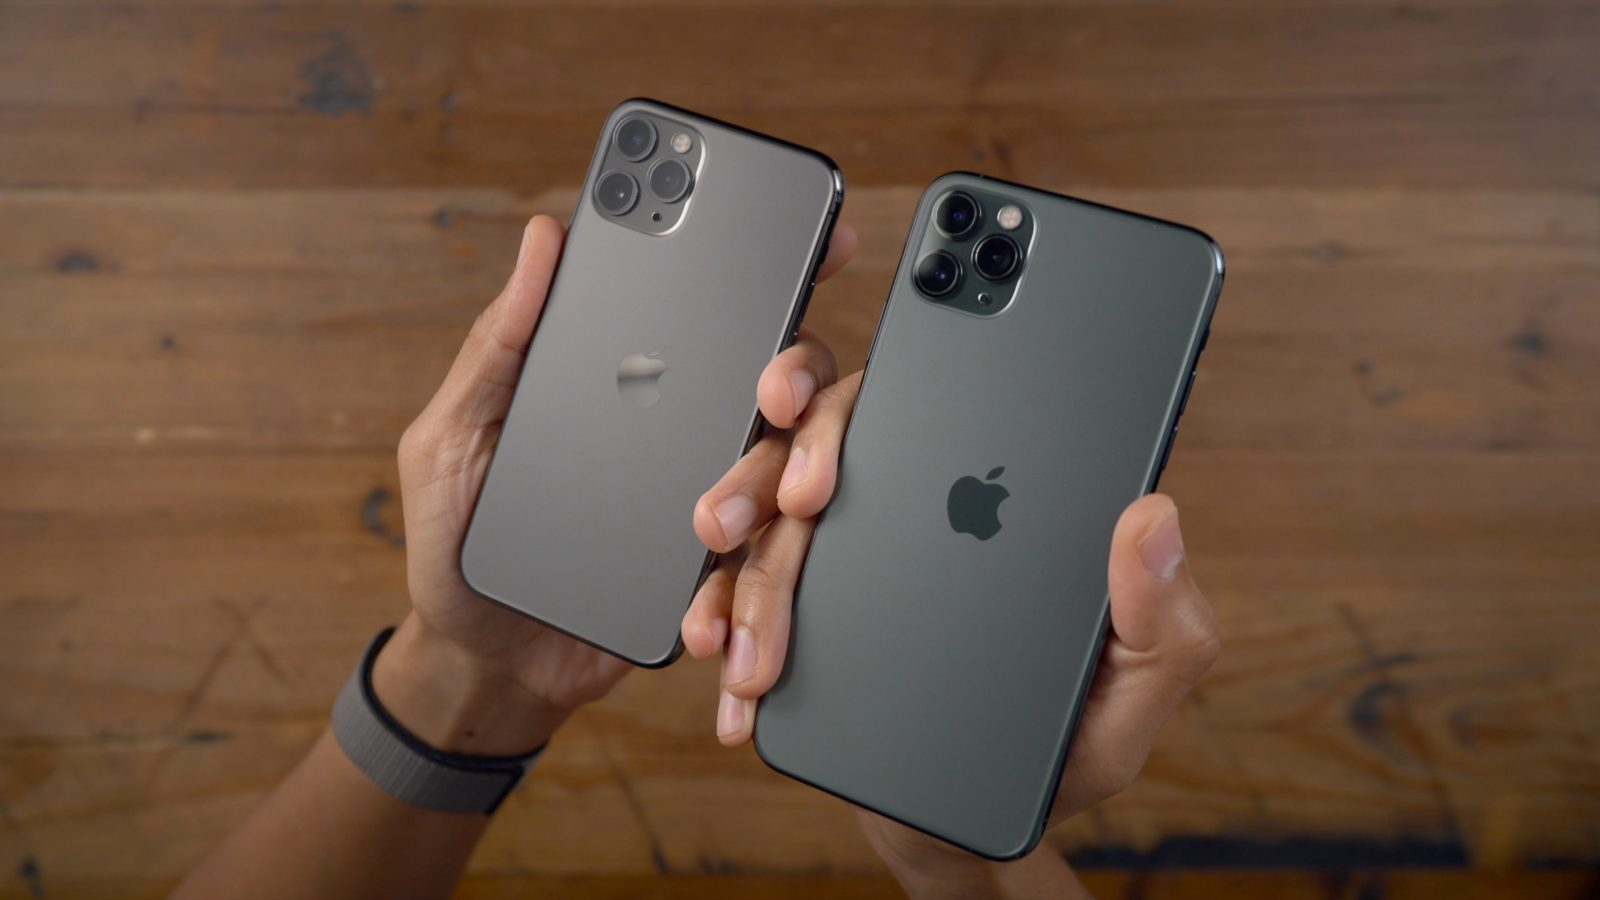 Apple responds to iPhone 11 Pro location sharing controversy, iOS update will add new toggle